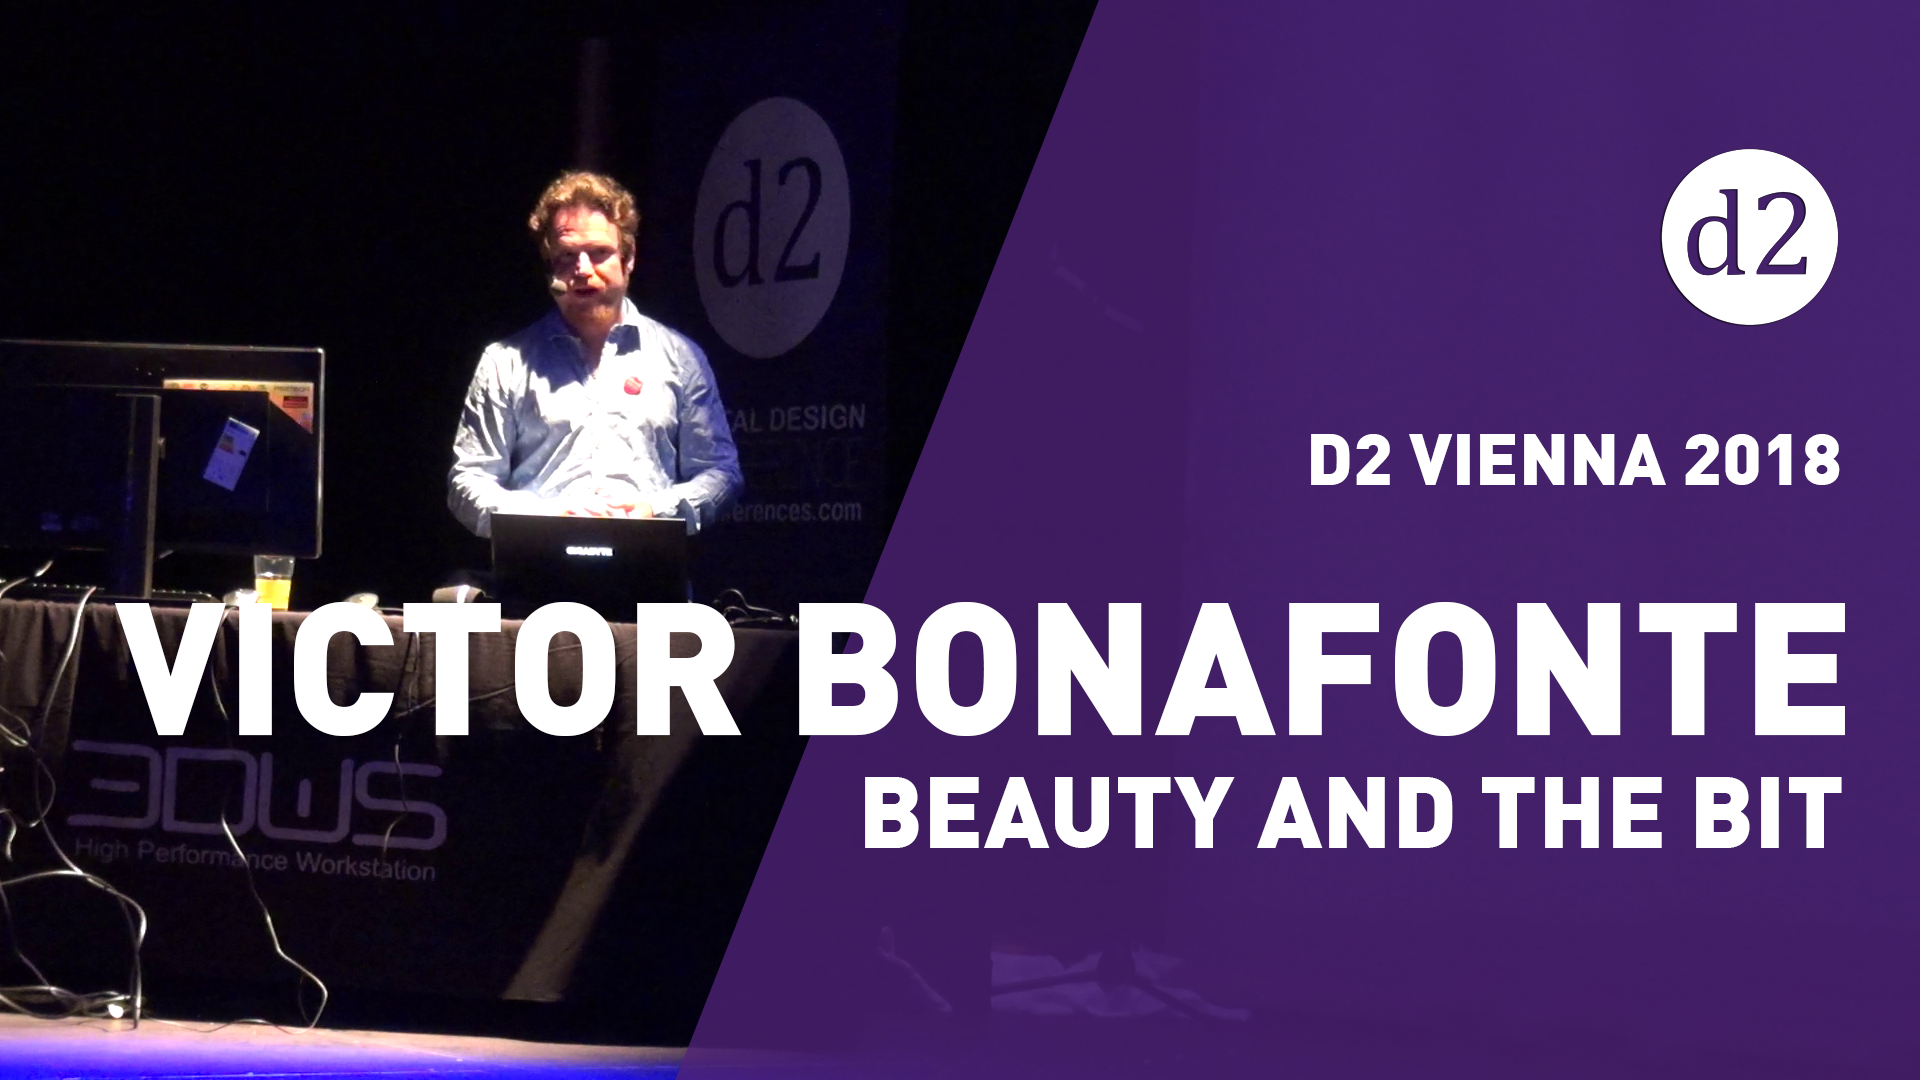 D2 Vienna 2018: Victor Bonafonte from Beauty and the Bit [Landmark Premiere]